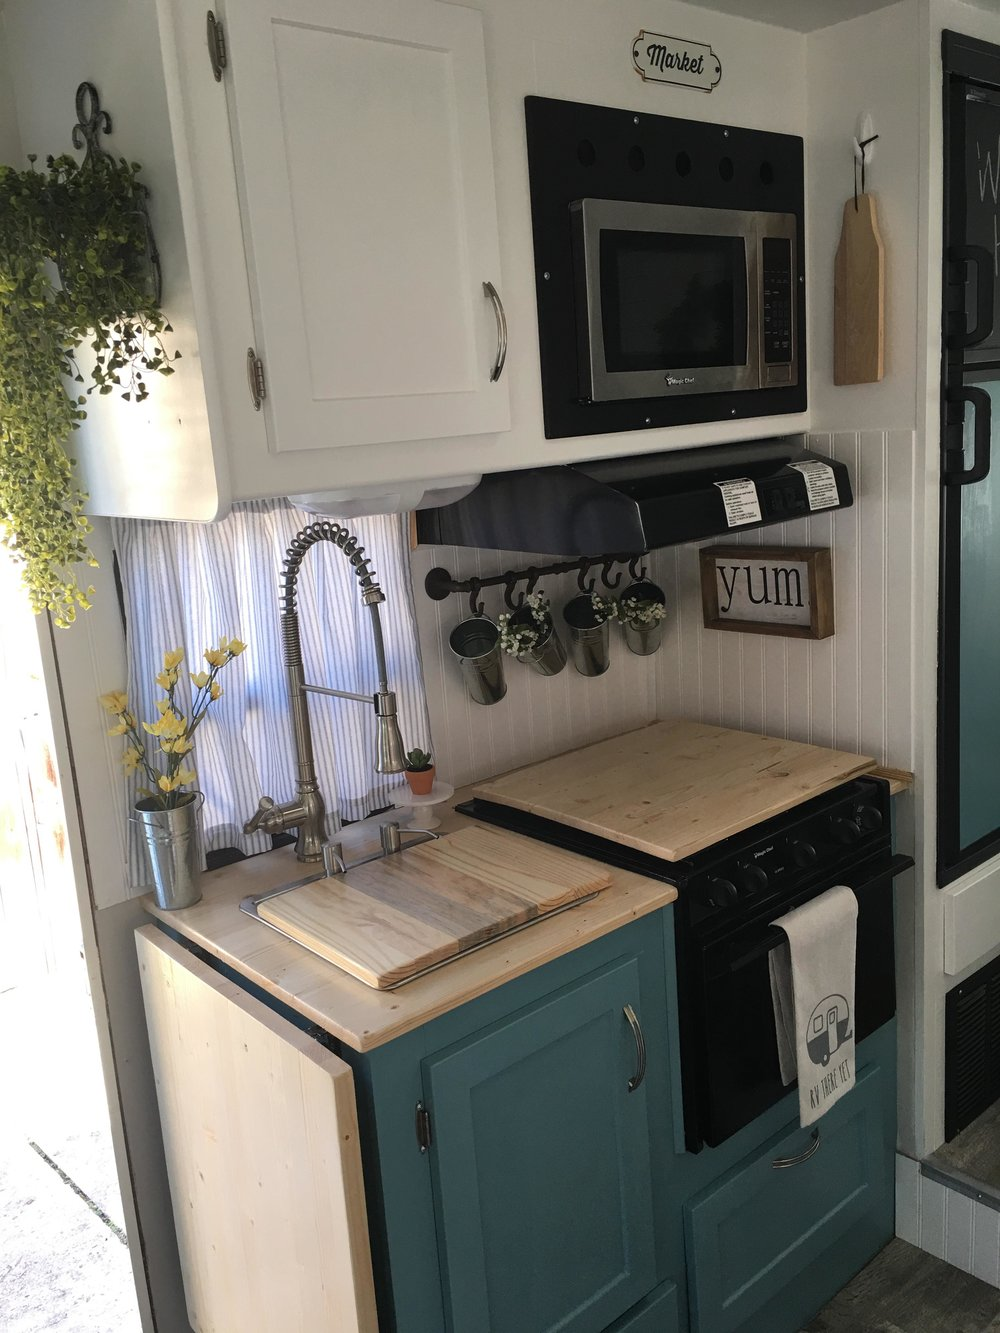 custom kitchen cabinets and counter in an rv.jpg